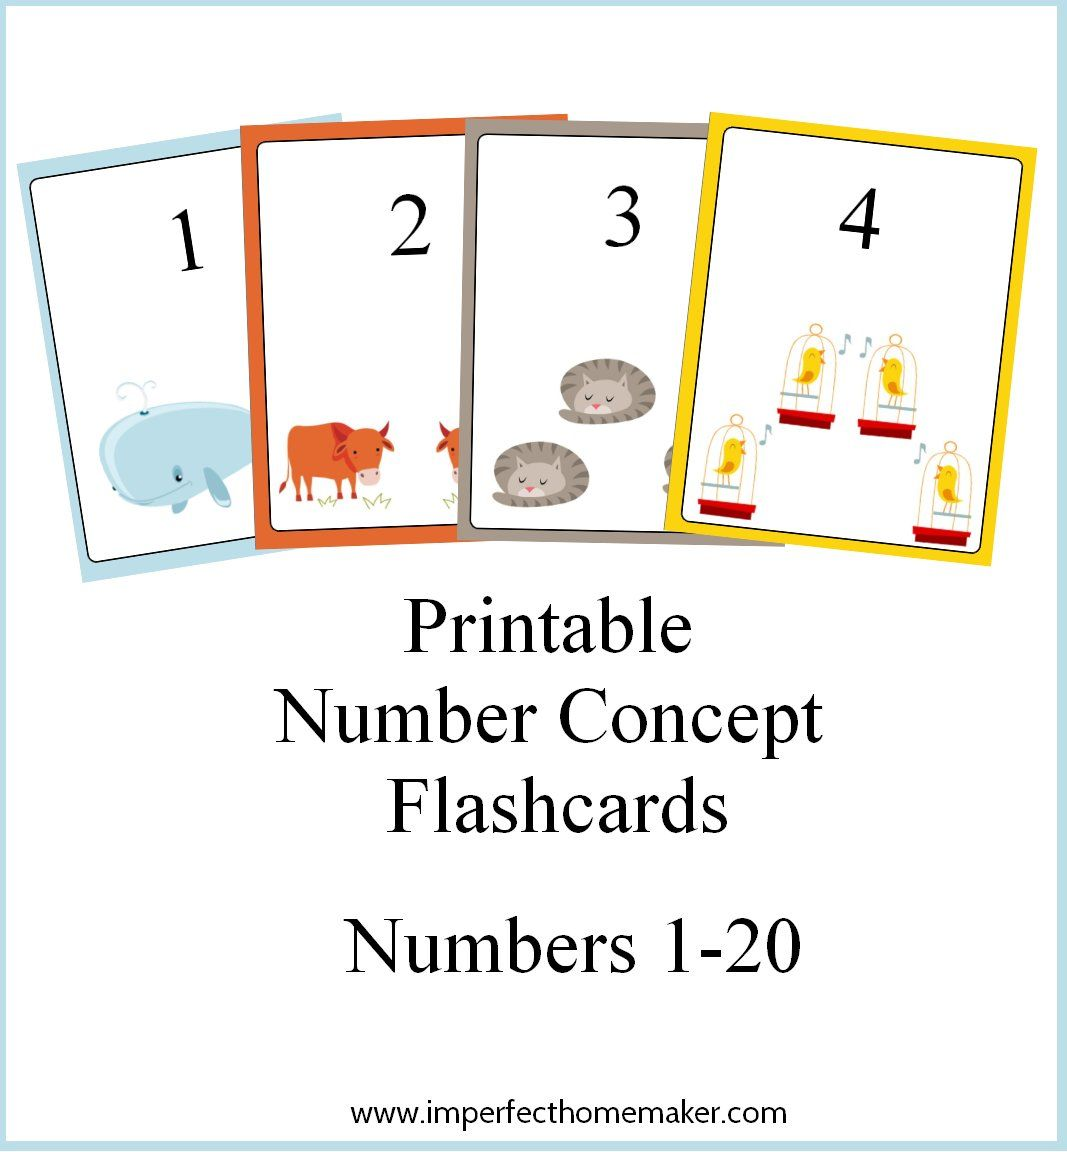 Printable Number Concept Flashcards 1-20 with number and corresponding  number of items